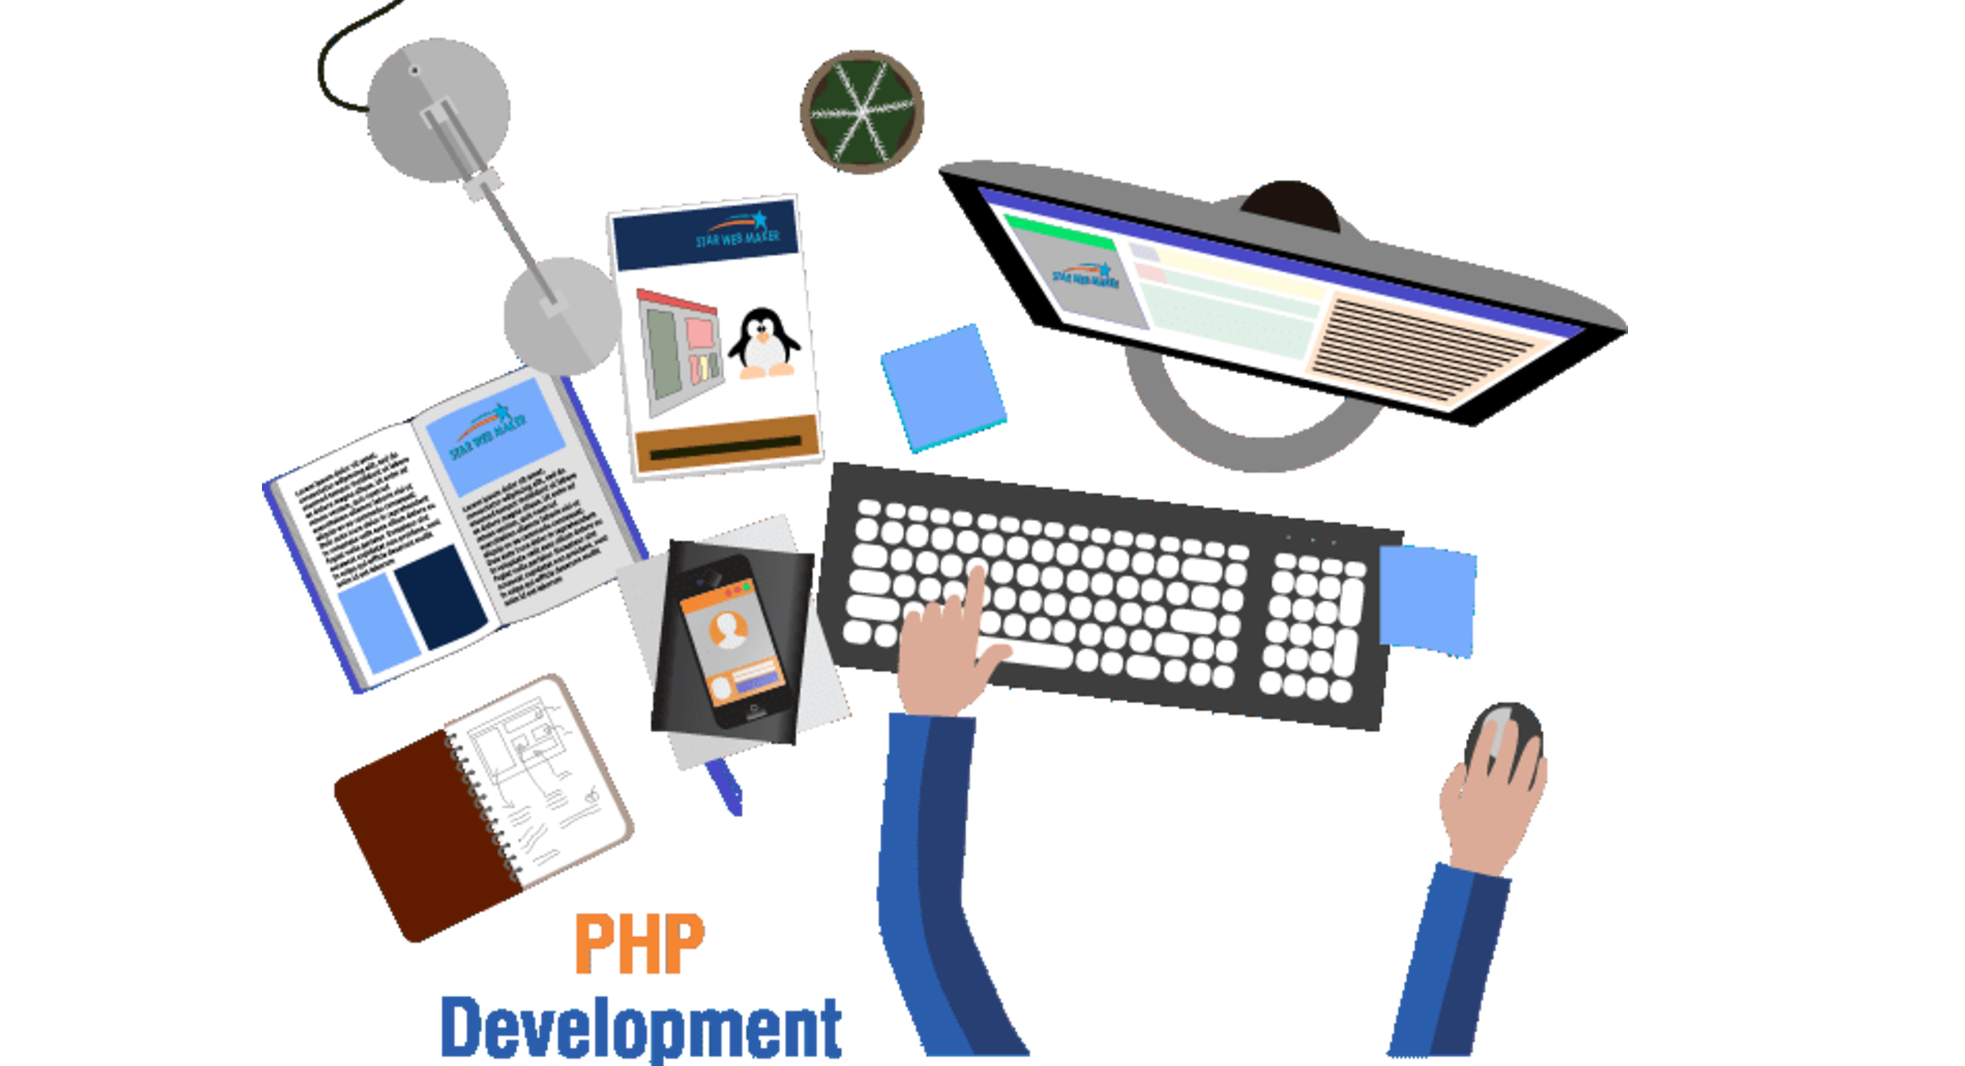 PHP is a free and open-source technology that is helpful in creating a rich and lively web piece. If you are looking for powerful web and app development services, then stay at TECH GURU IT SOLUTIONS.  We have gained the standing of a Top PHP Web Development Company among our globe clients. Our PHP development company Noida is broadly known for delivering expert PHP solutions. Our solutions are custom-made to accommodate your particular business prerequisite and connect with clients while fulfilling coding rules.  Being a believed PHP web development company, TECH GURU IT SOLUTIONS. offers unmatched custom PHP development services to enable your online business do better than your competitors. To go past your desires, we always endeavor hard to convey what we guarantee to our clients.  The robust execution process allow our qualified PHP developers to convey top-level PHP web development services that are most excellent appropriate to your web development needs.